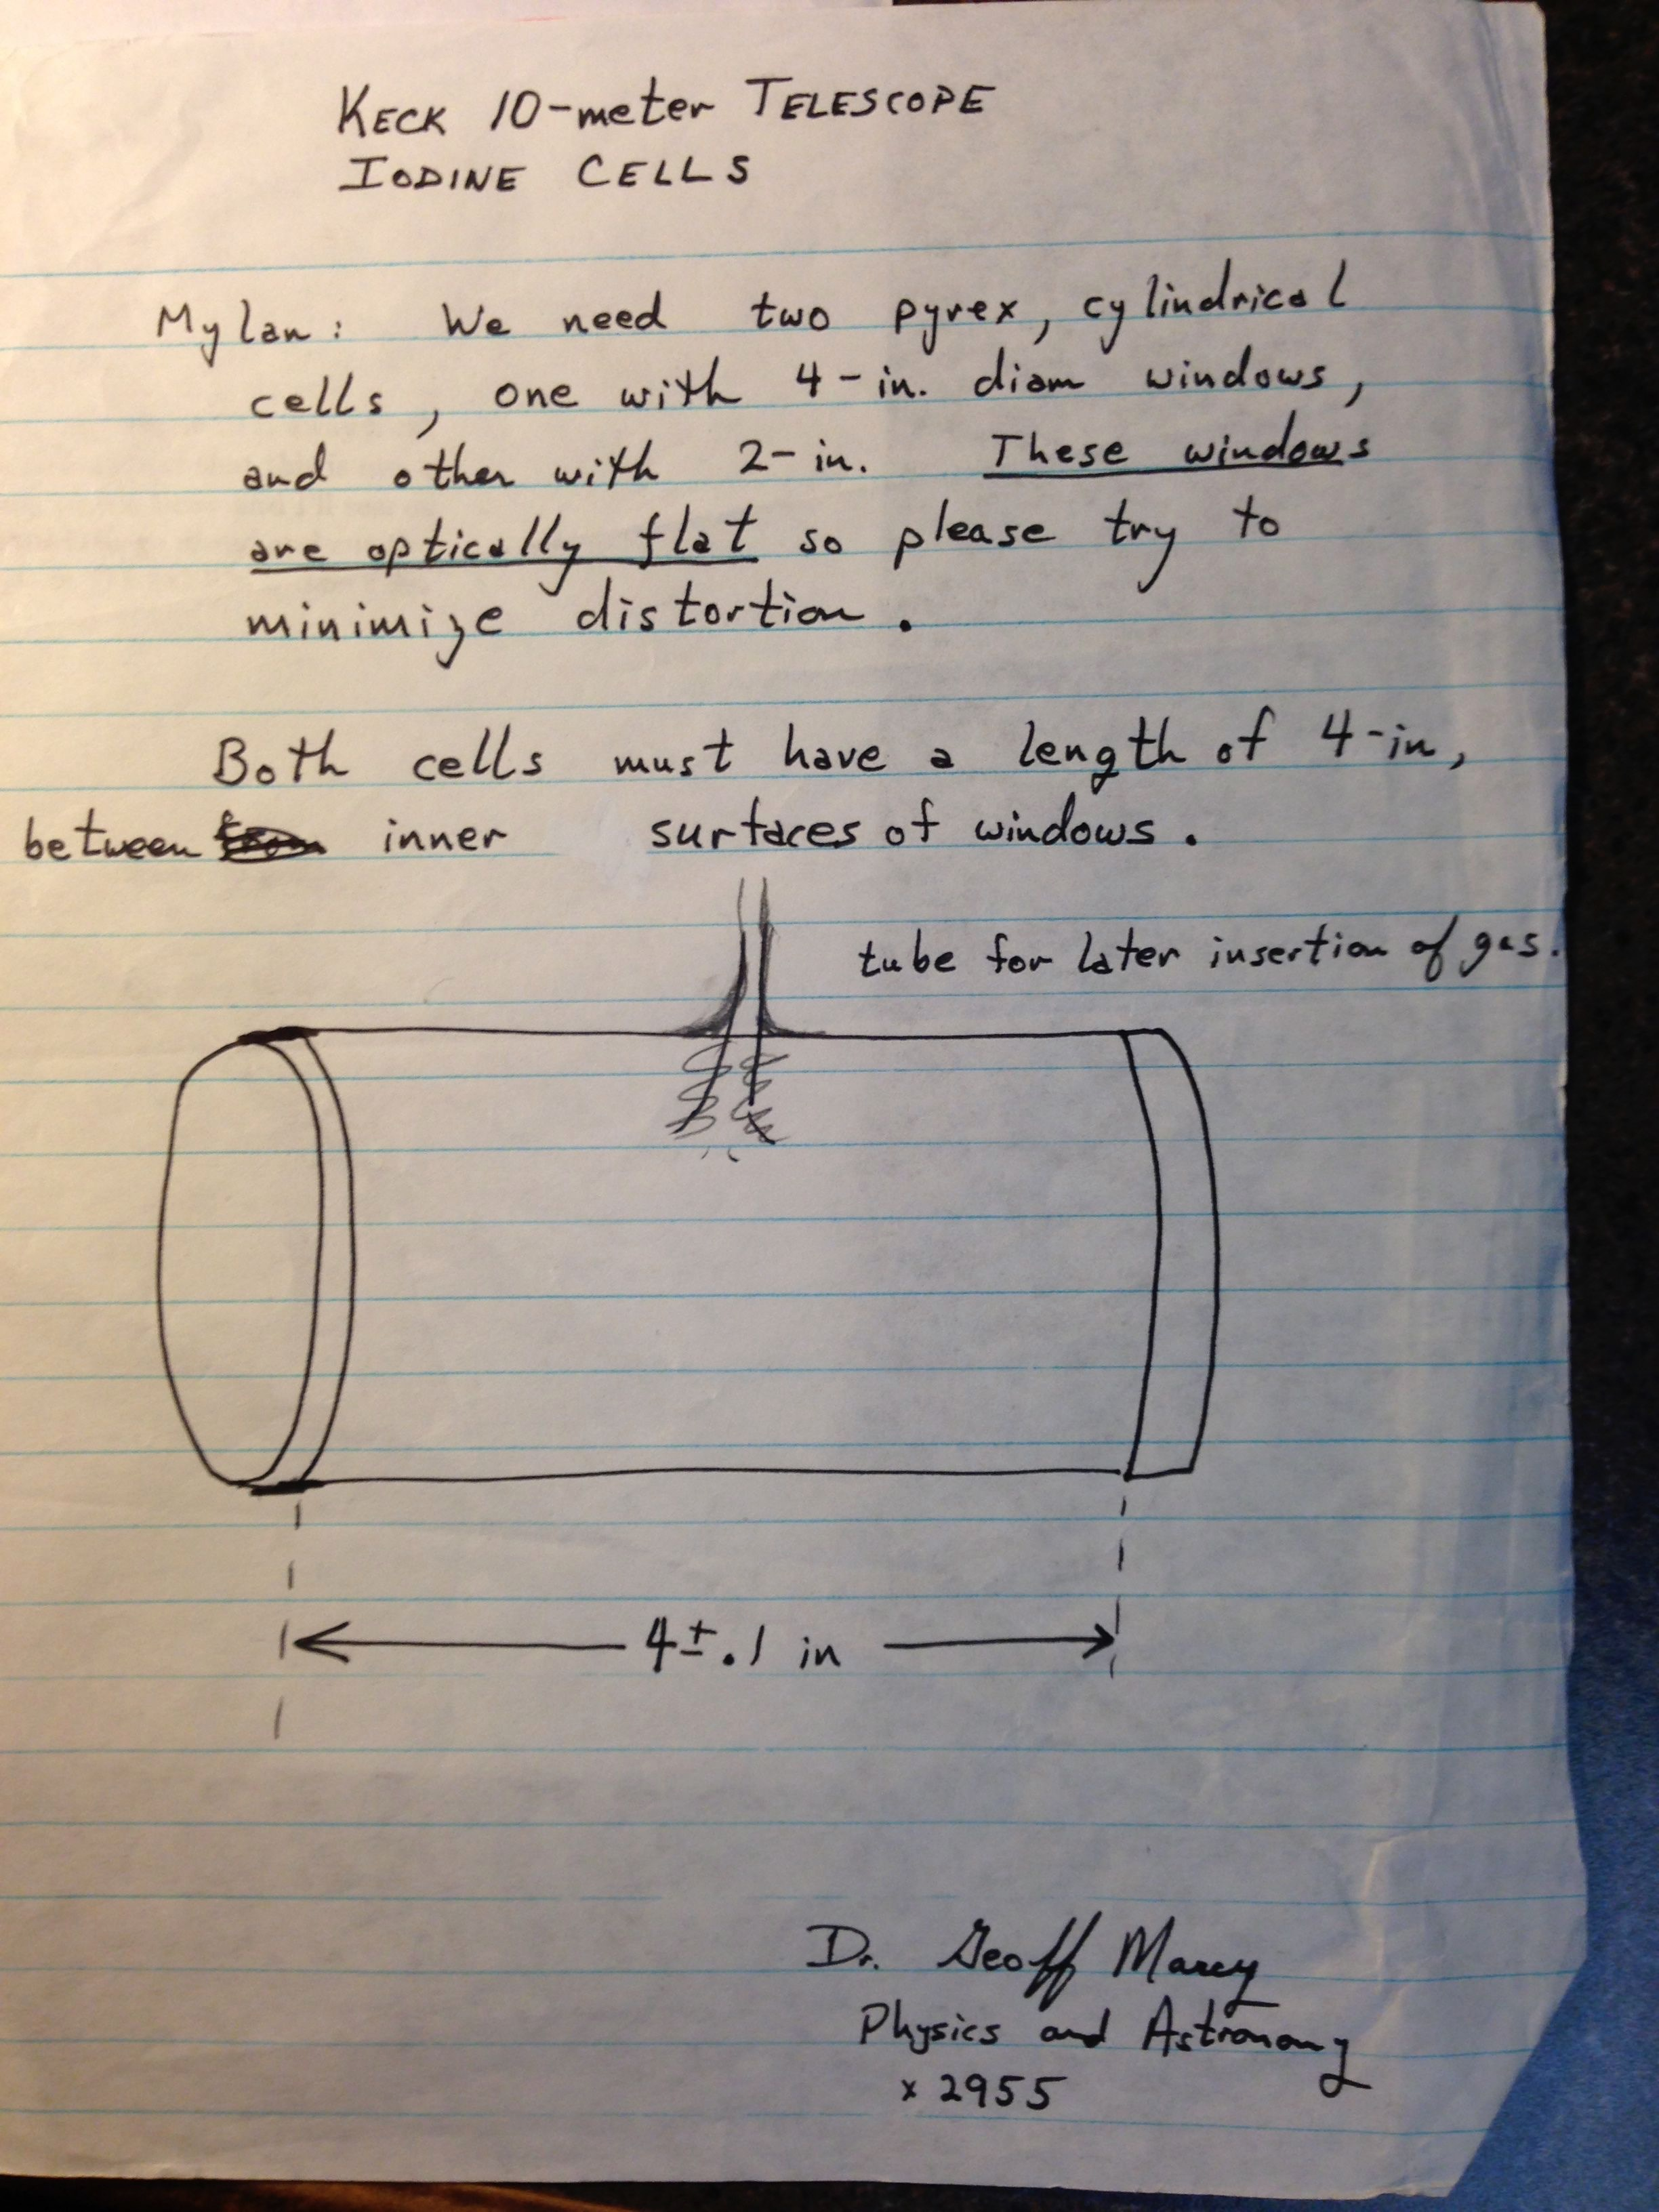 Notes on the construction of the iodine cell for Keck for SFSU glass blower Mylan Healy.